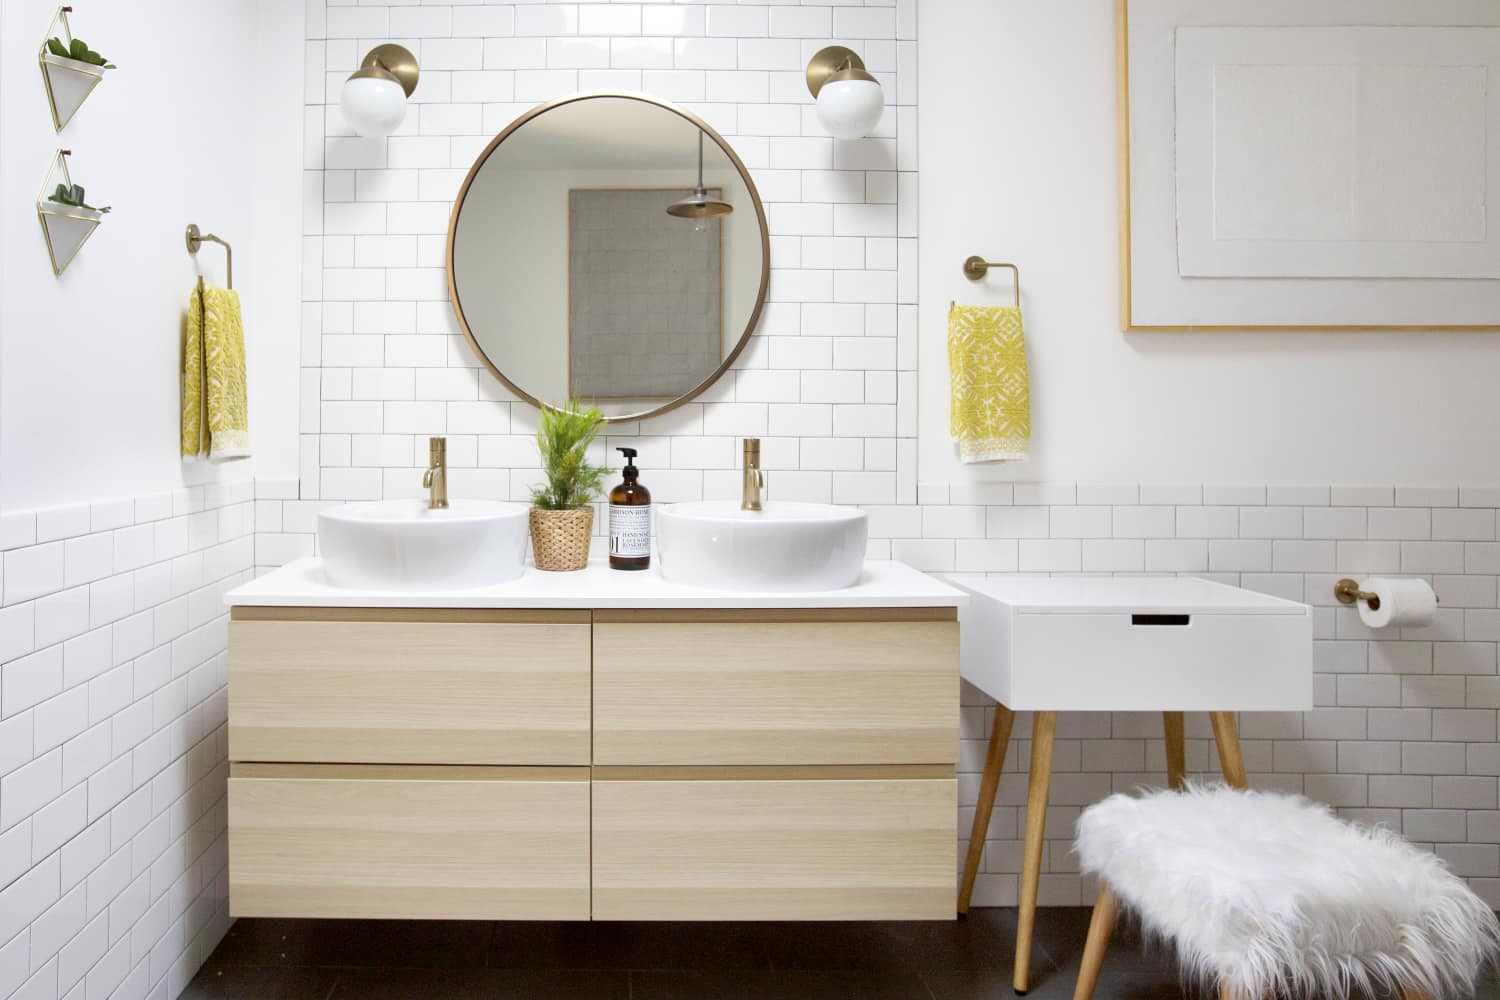 Bathroom remodel cost how to budget a renovation - Average price for bathroom remodel ...